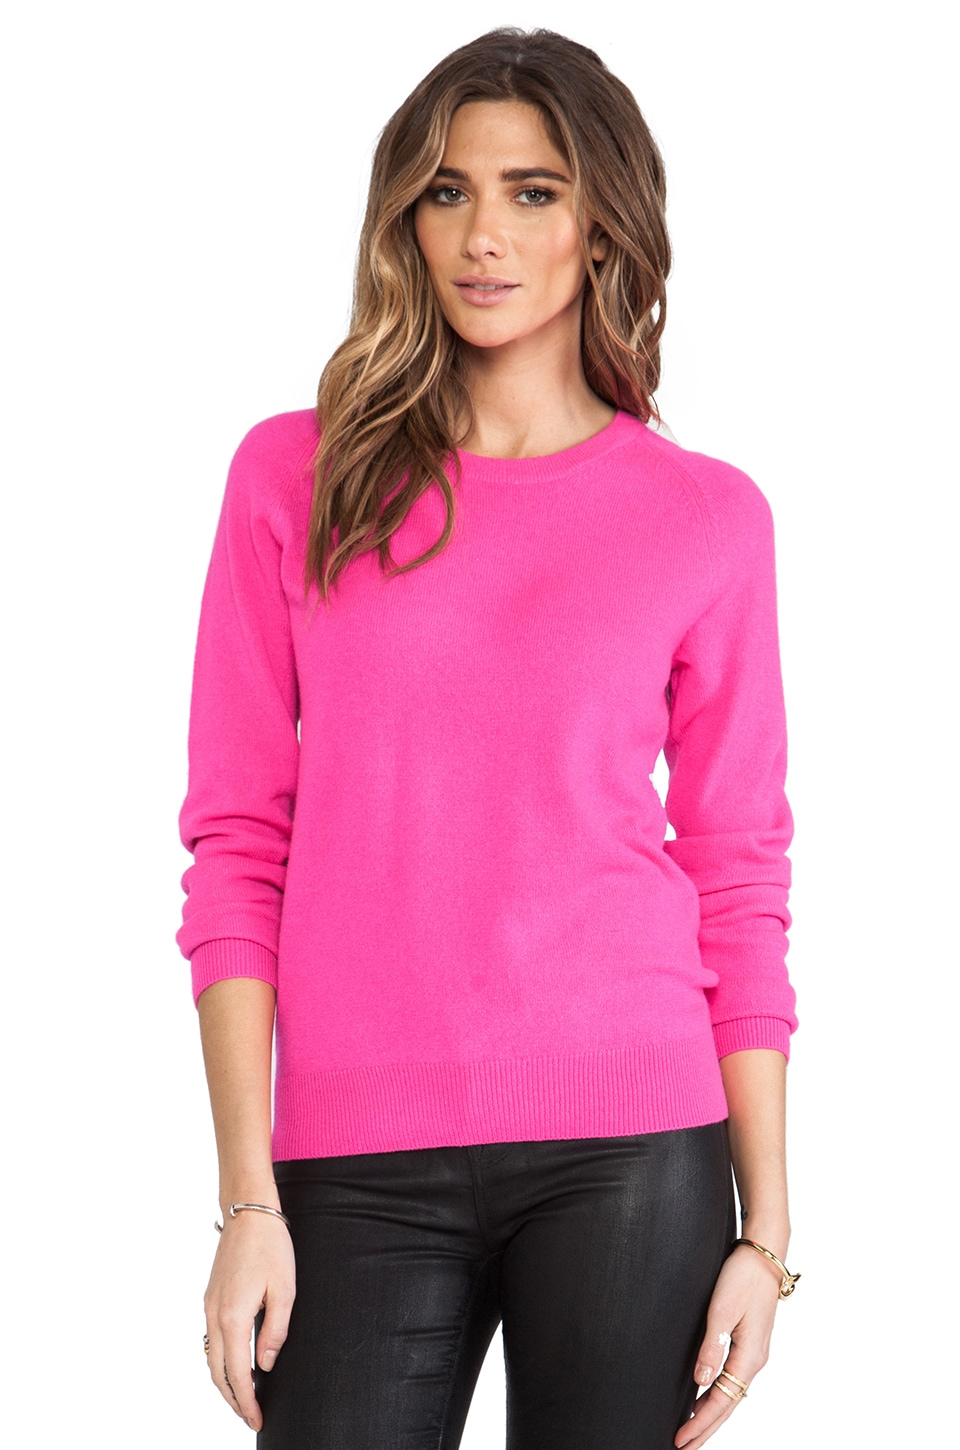 Equipment Sloan Crew Neck in Magenta